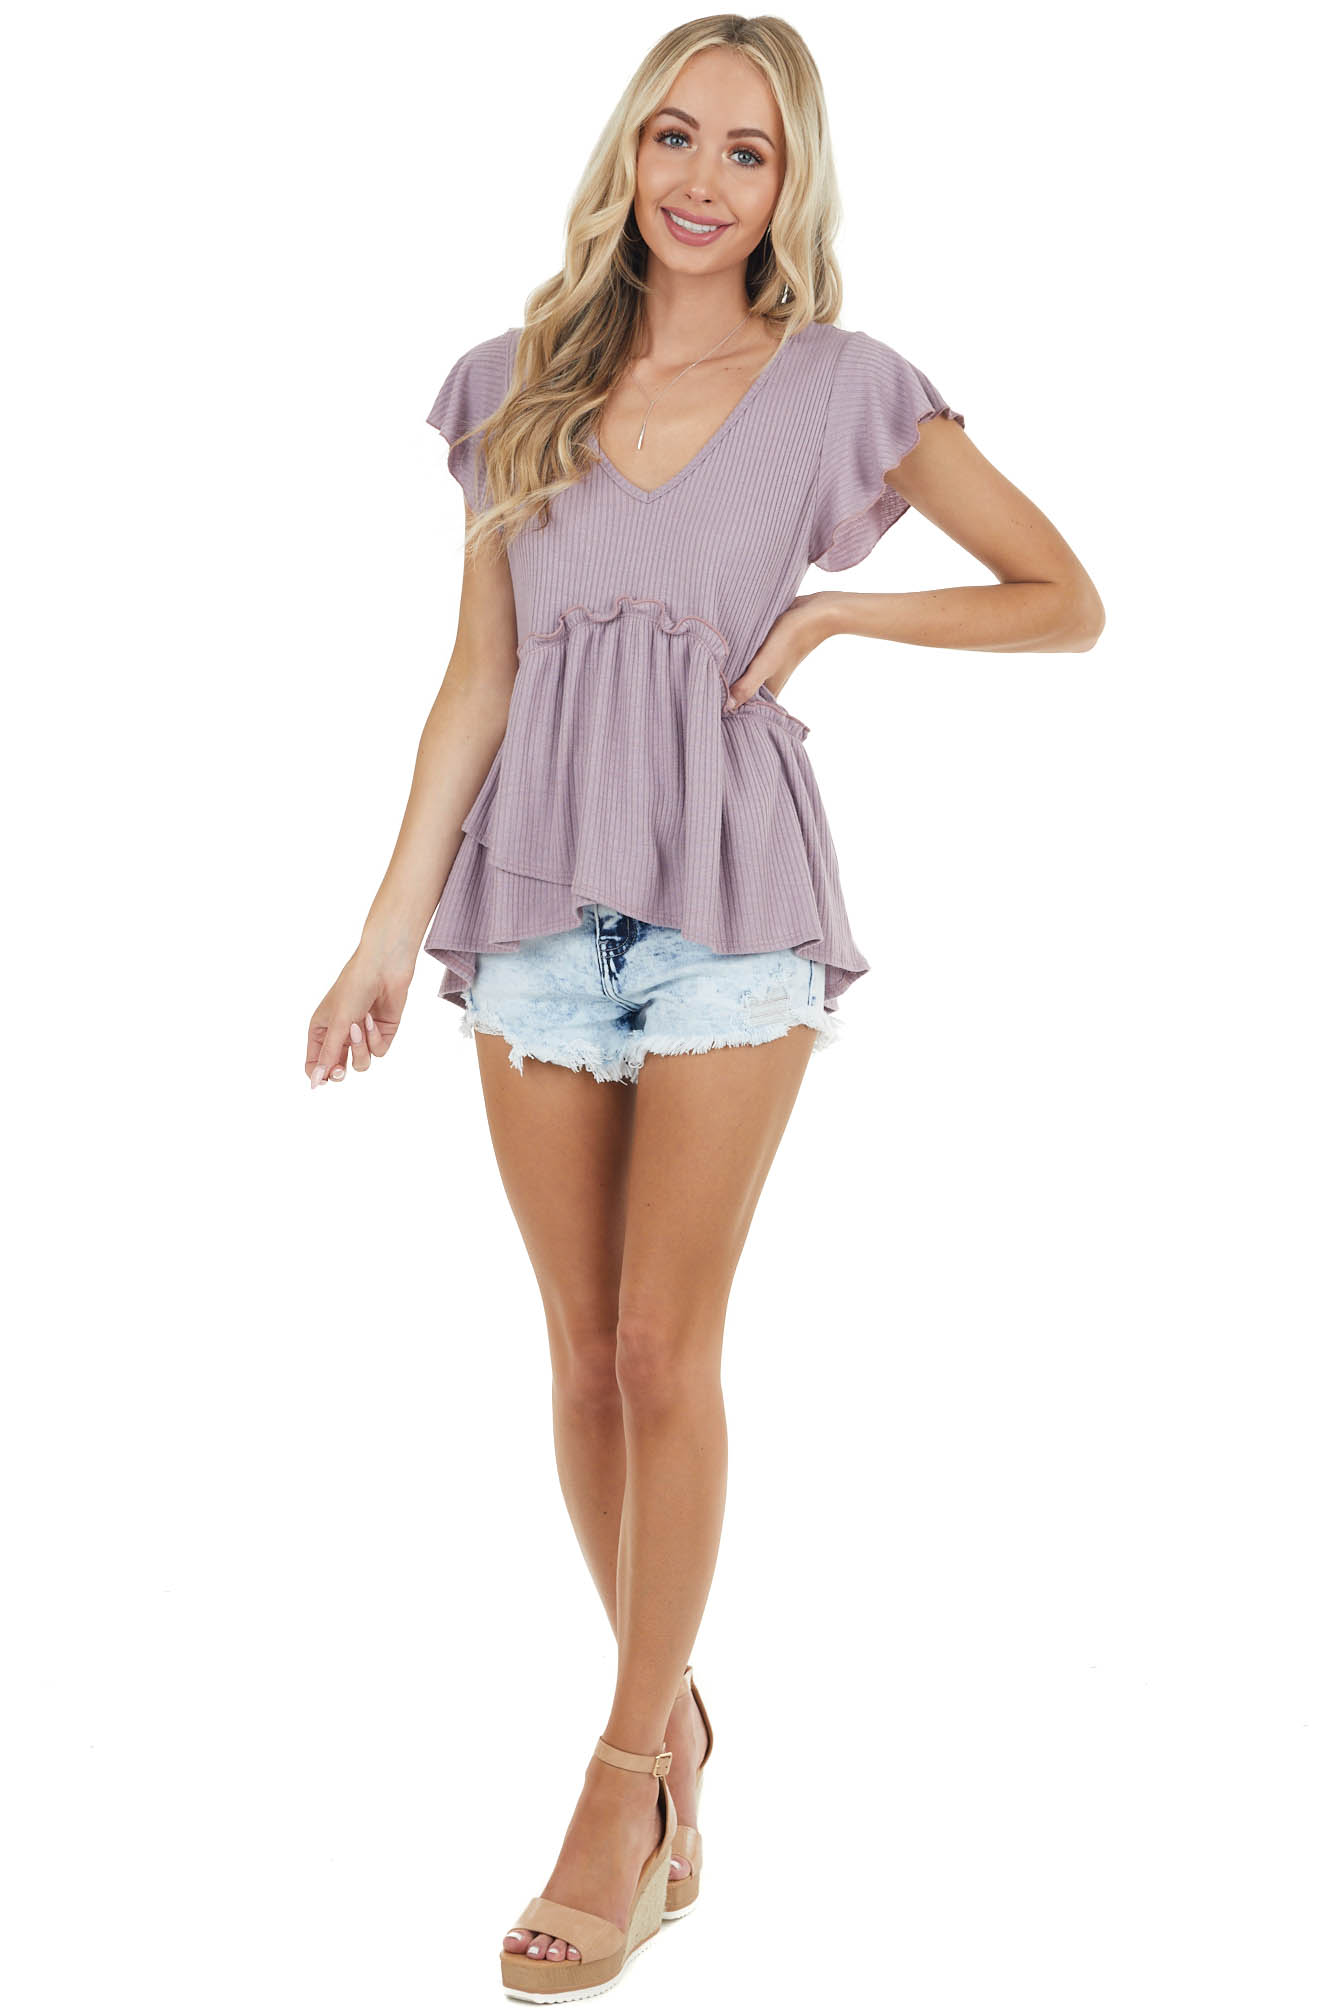 Dusty Lavender Babydoll Top with High Low Tulip Hemline